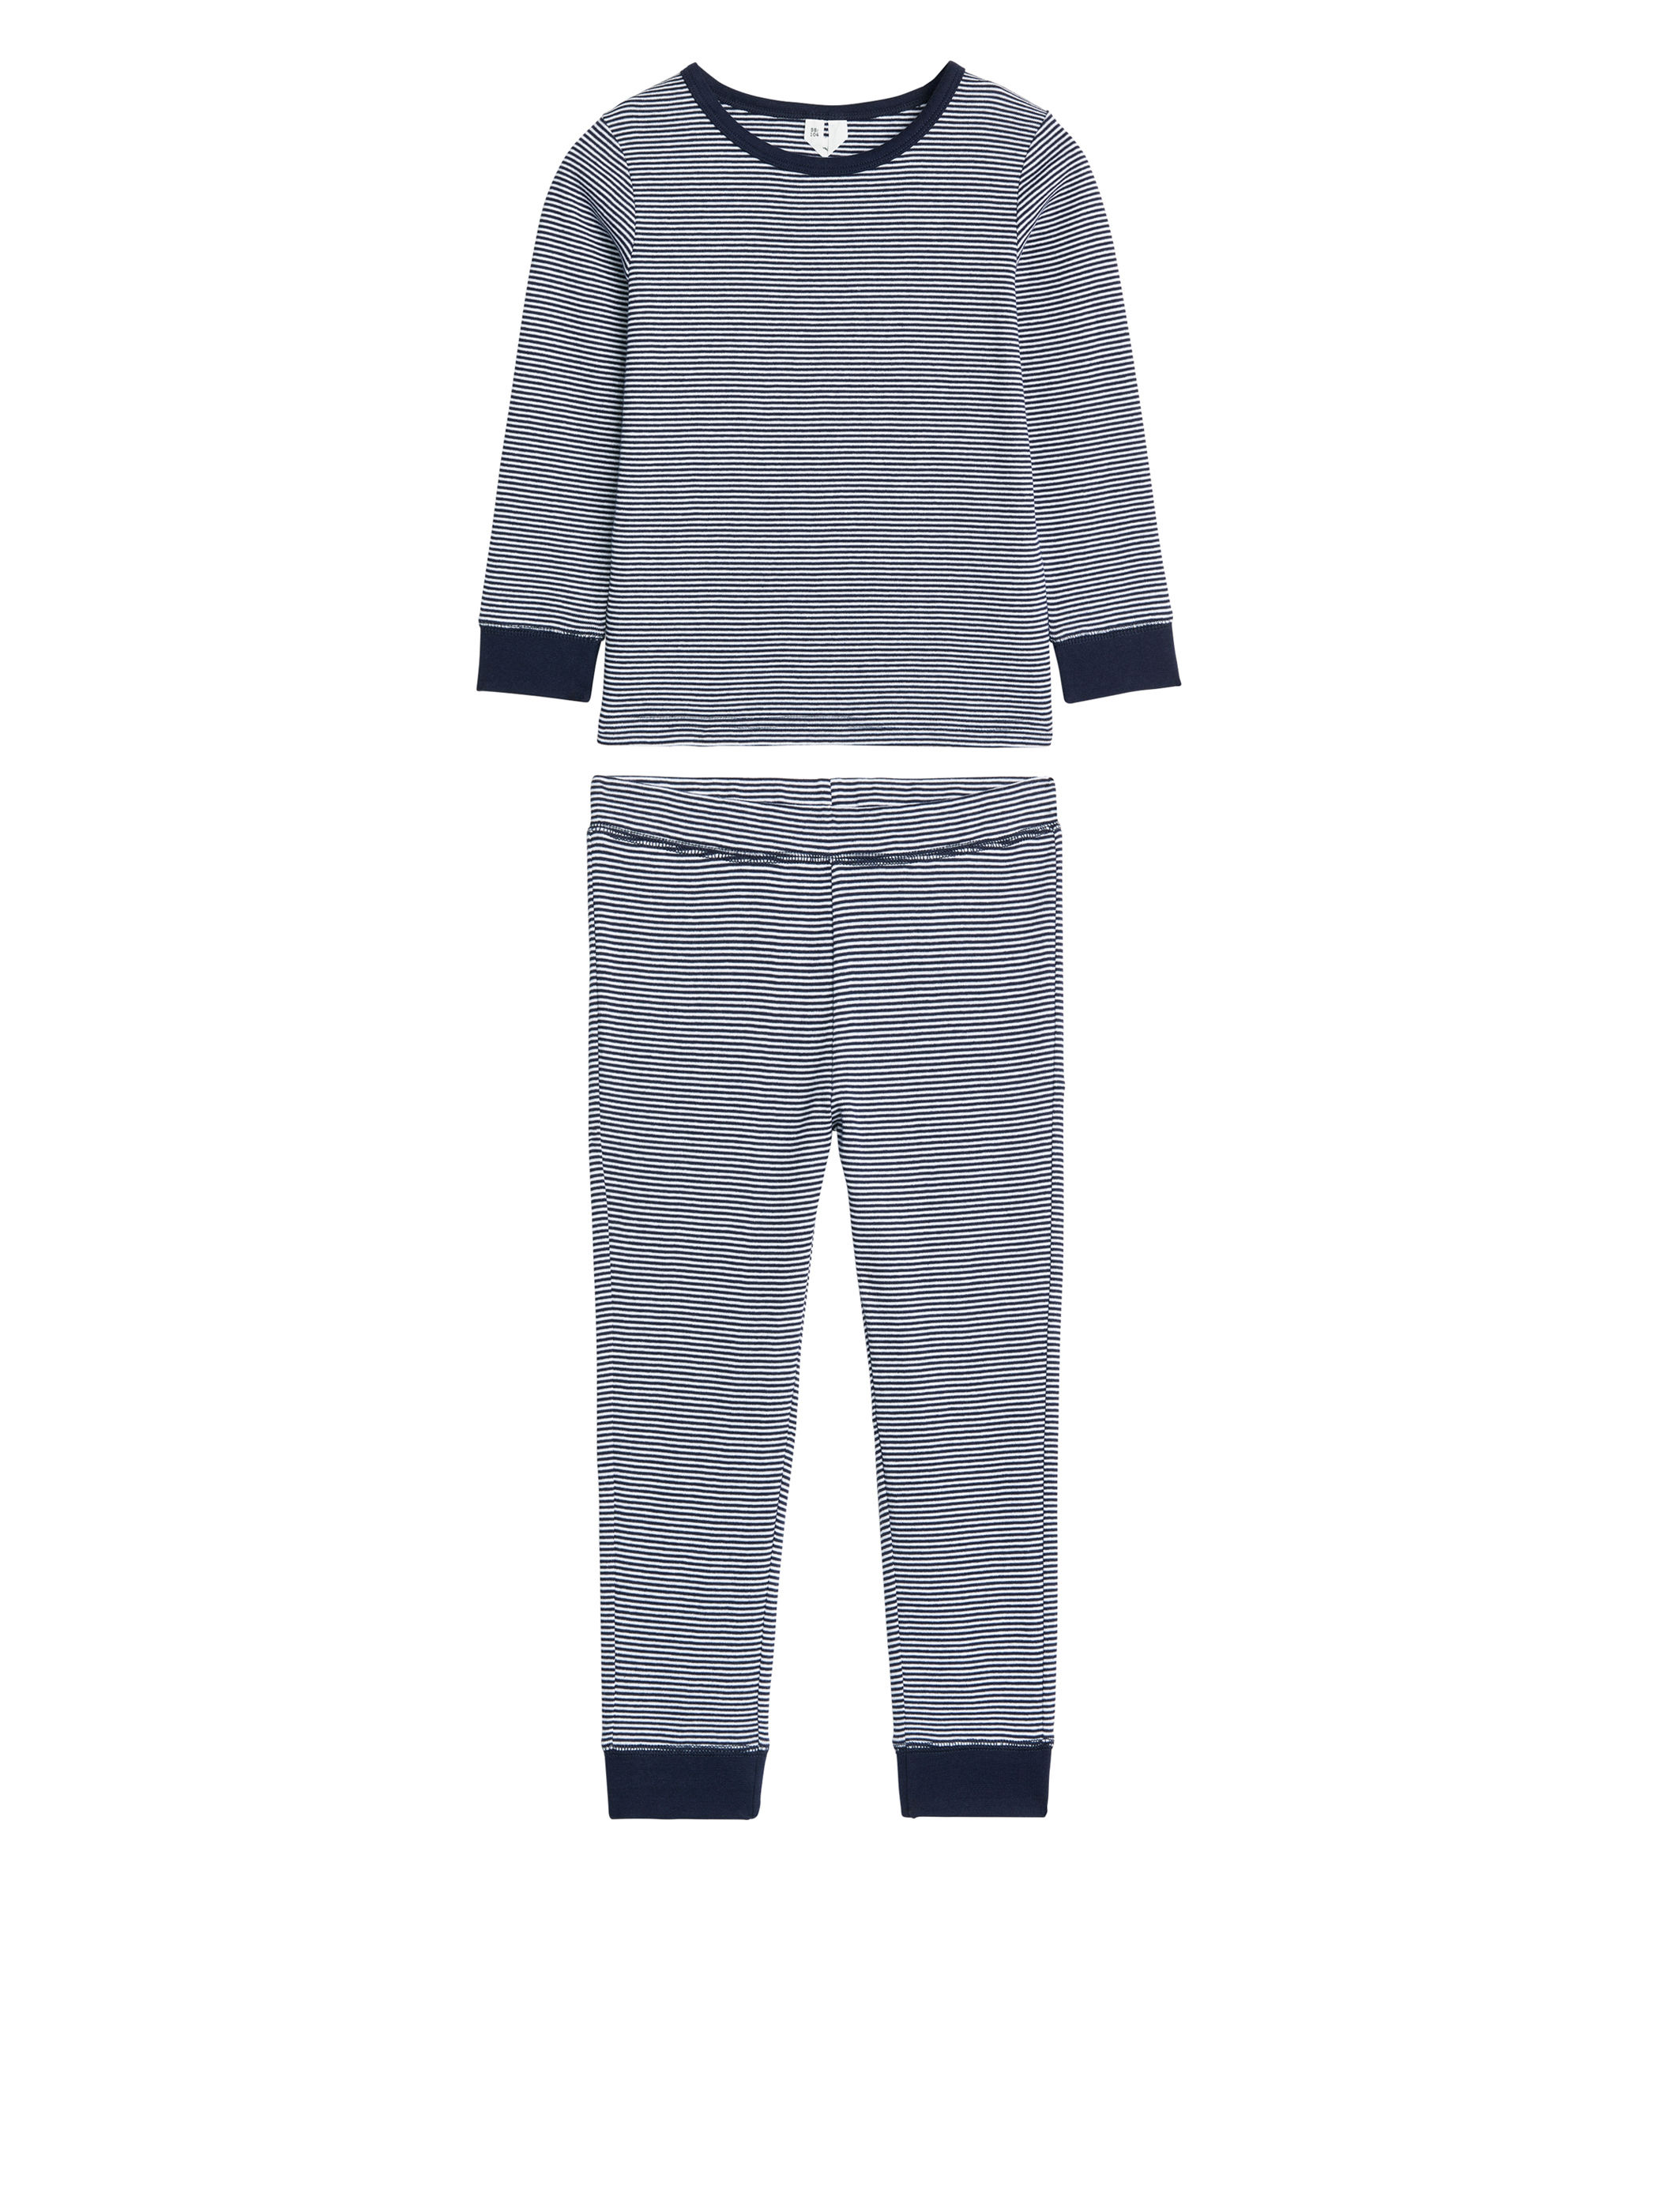 Fabric Swatch image of Arket cotton jersey pyjama set in blue